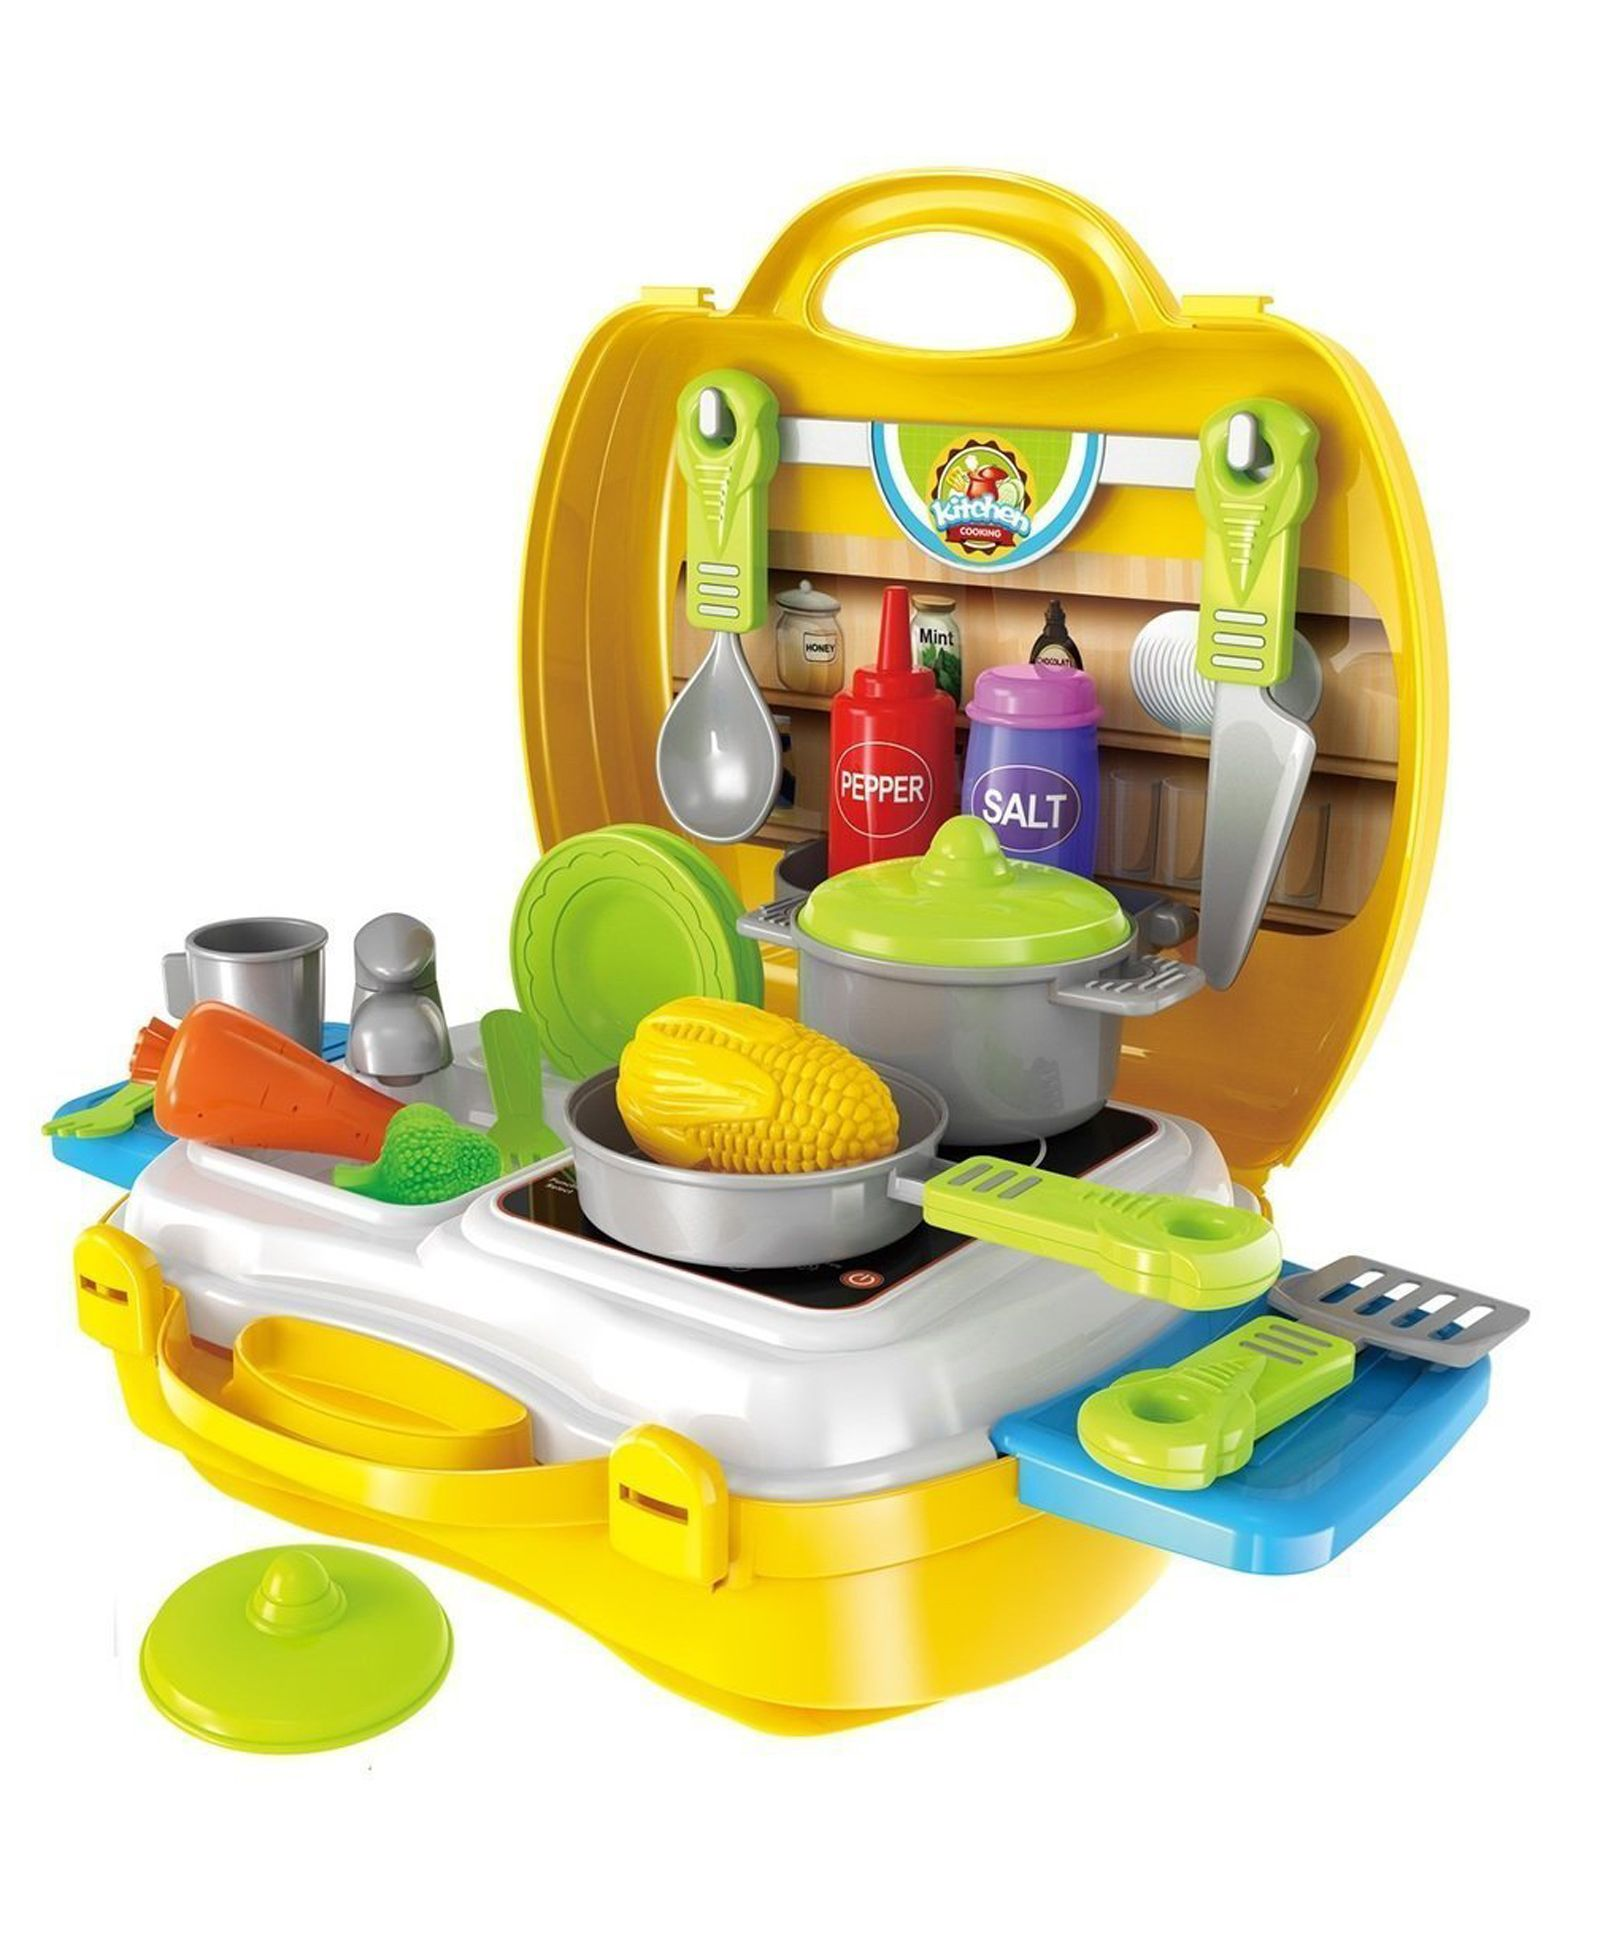 Toys Games Easels Funskool Kitchen Set The Role Play Kit For Boys And Girls From 3 To 8 Years